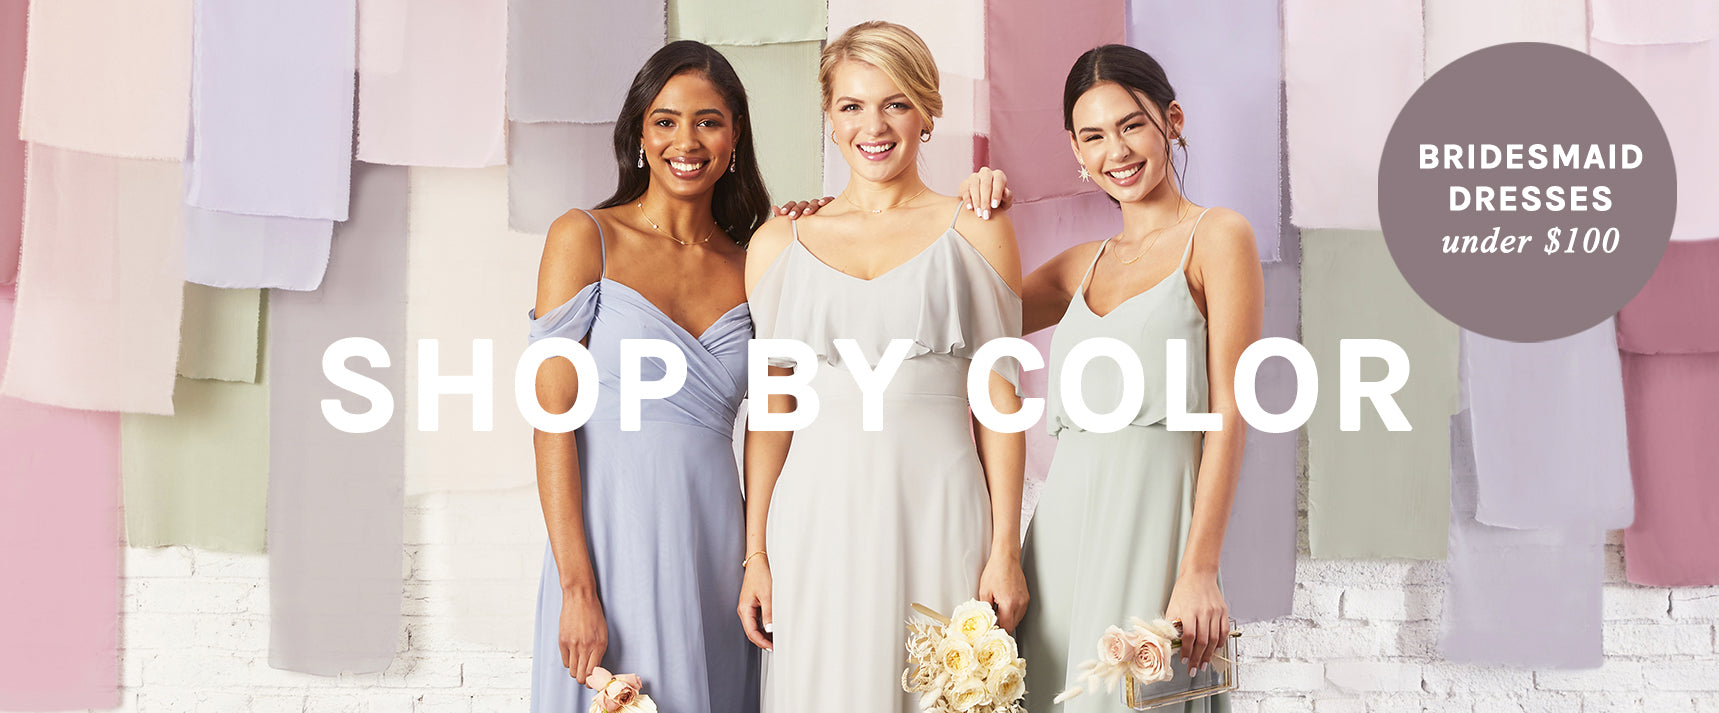 Shop Bridesmaid Dresses Under $100 By Color